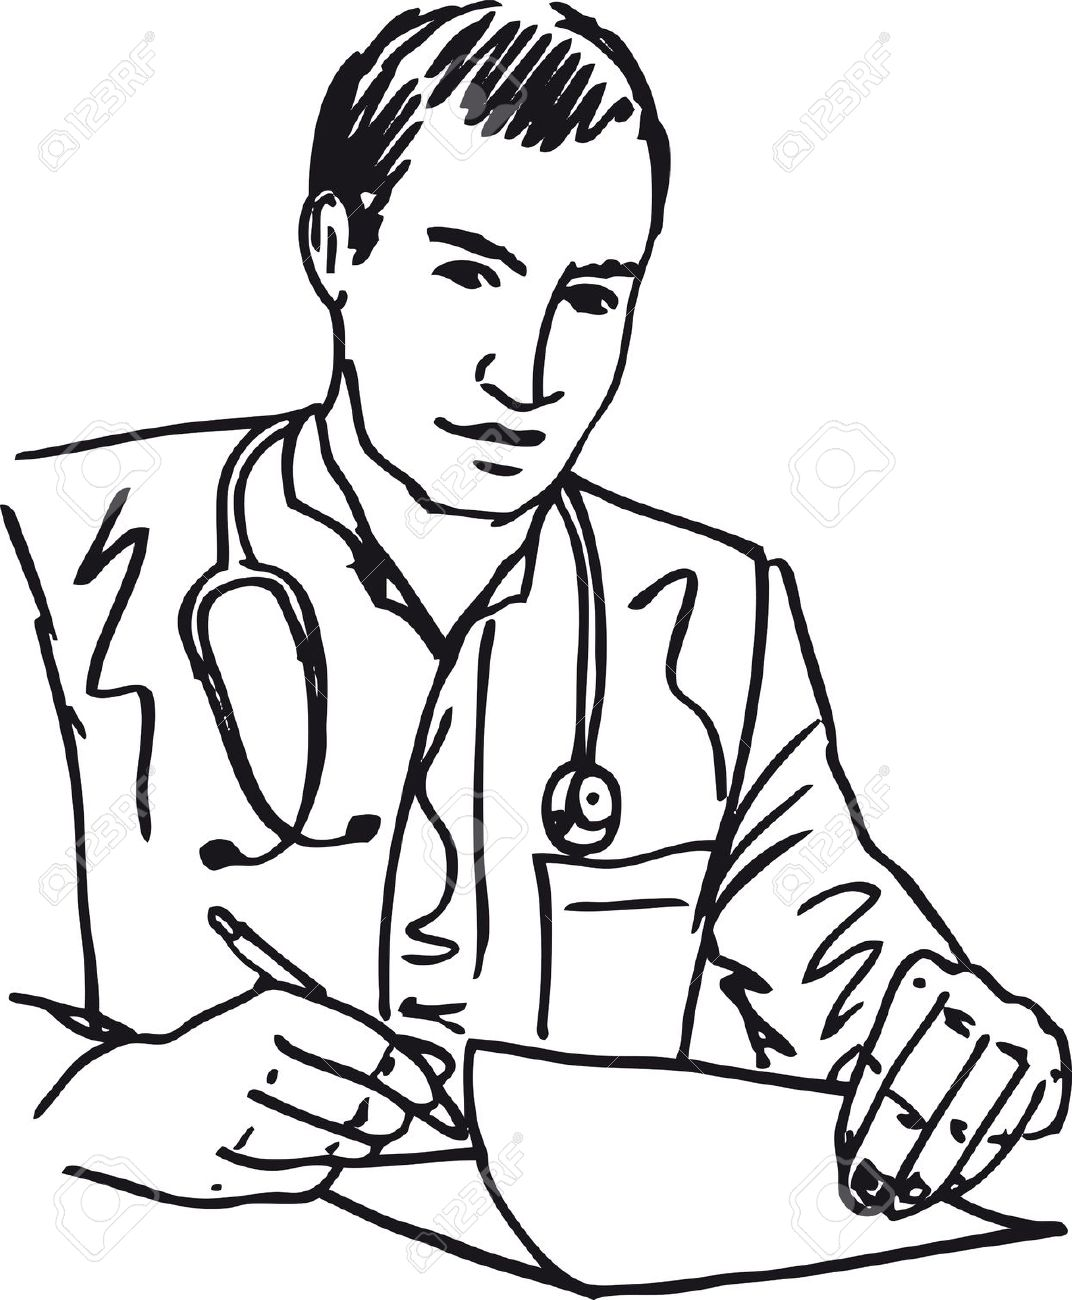 Clipart doctor black and white. Free download best